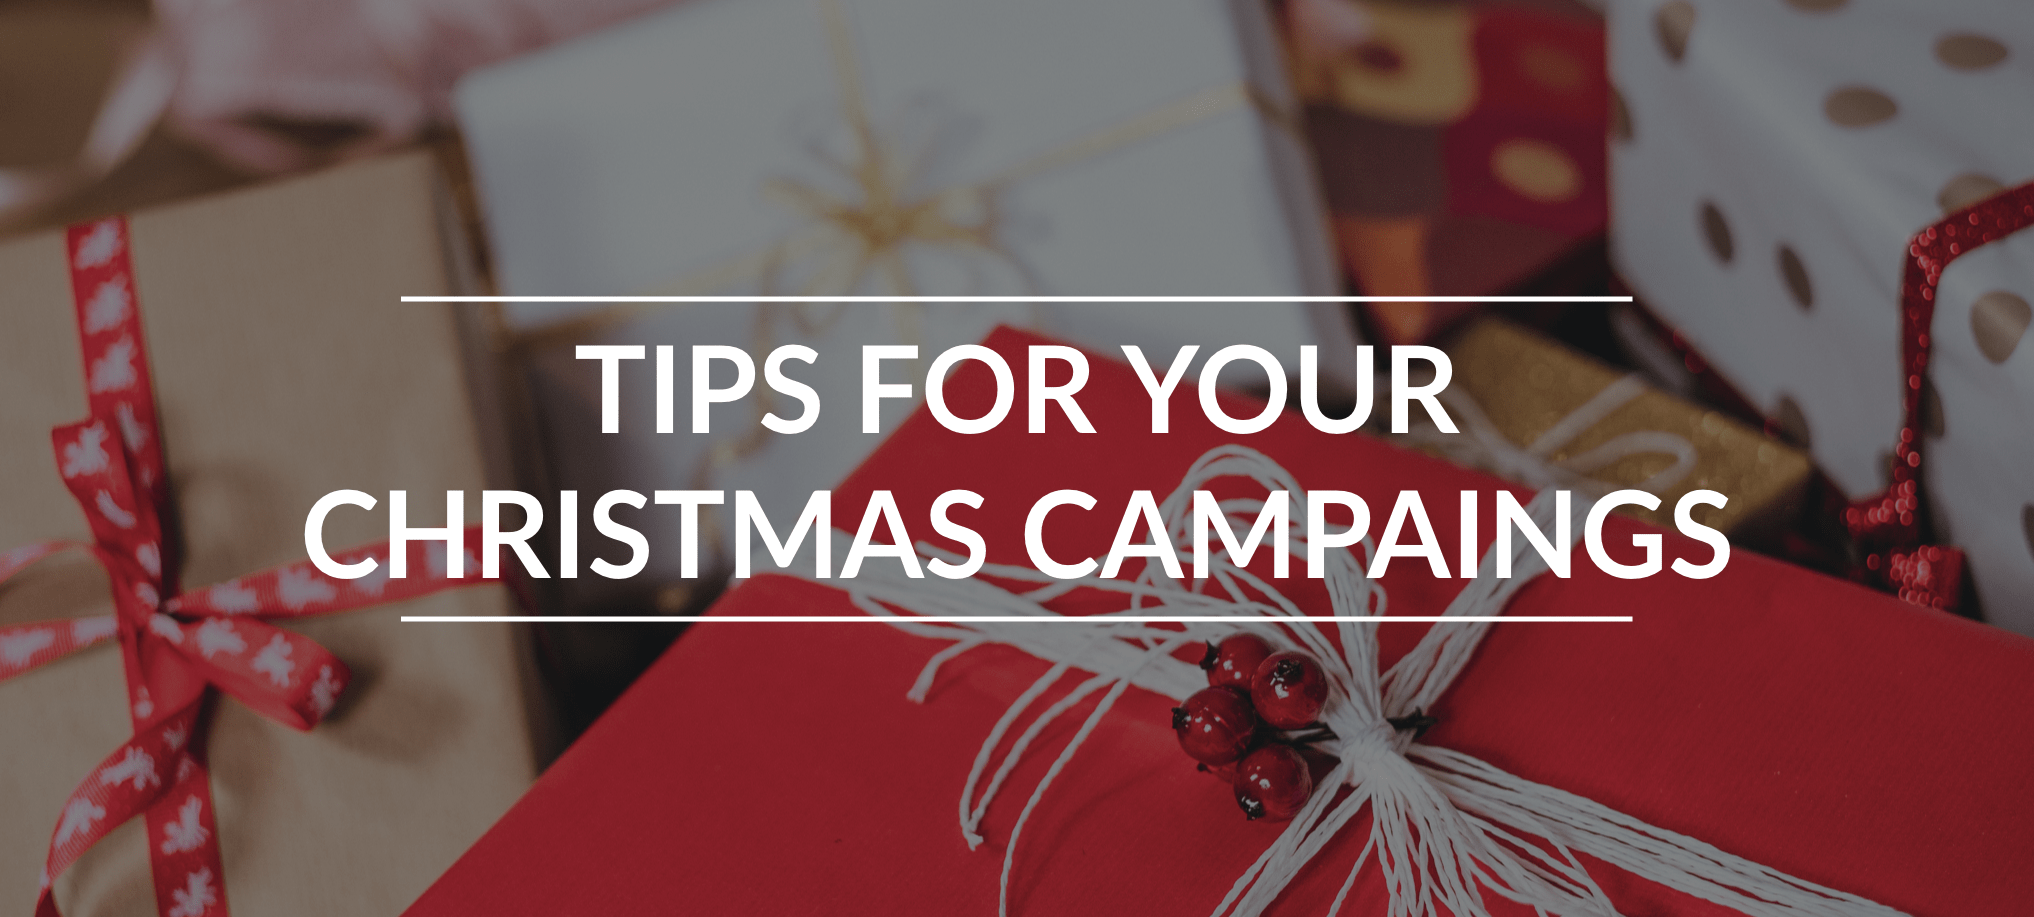 Bannière Tips for your Christmas campaings 01